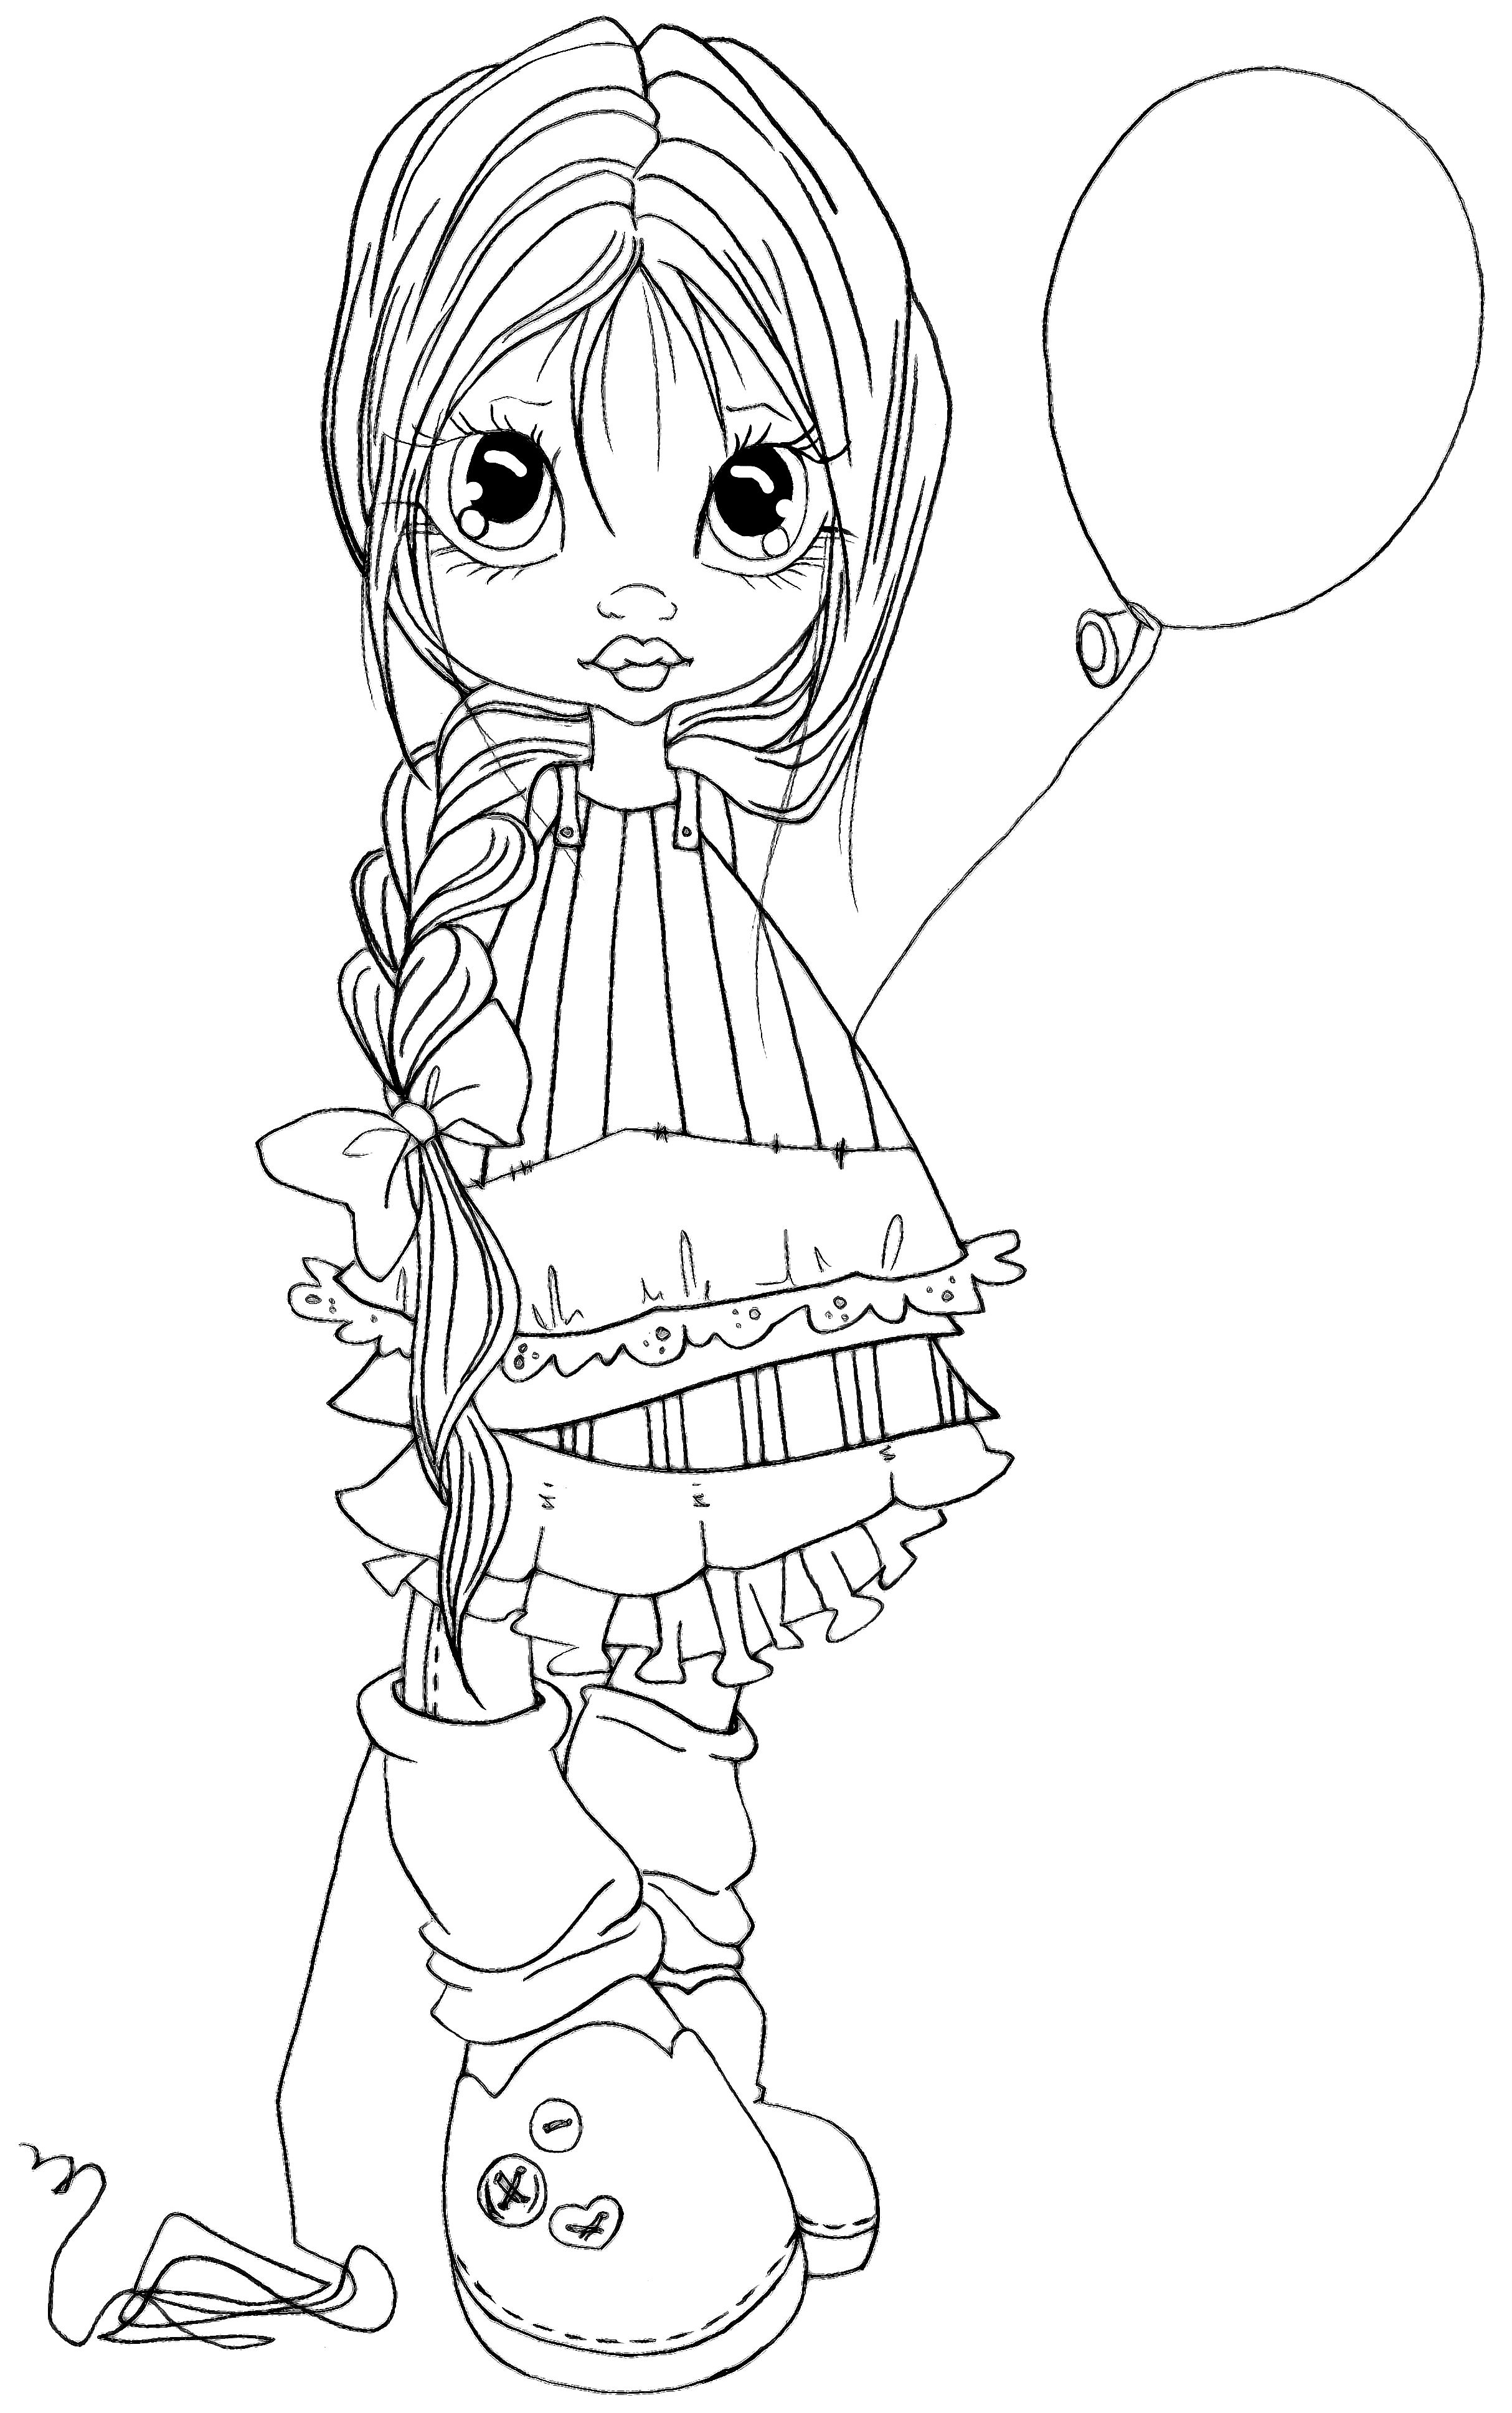 ava coloring pages | Ava (f) | Colouring Images | Coloring pages for girls ...